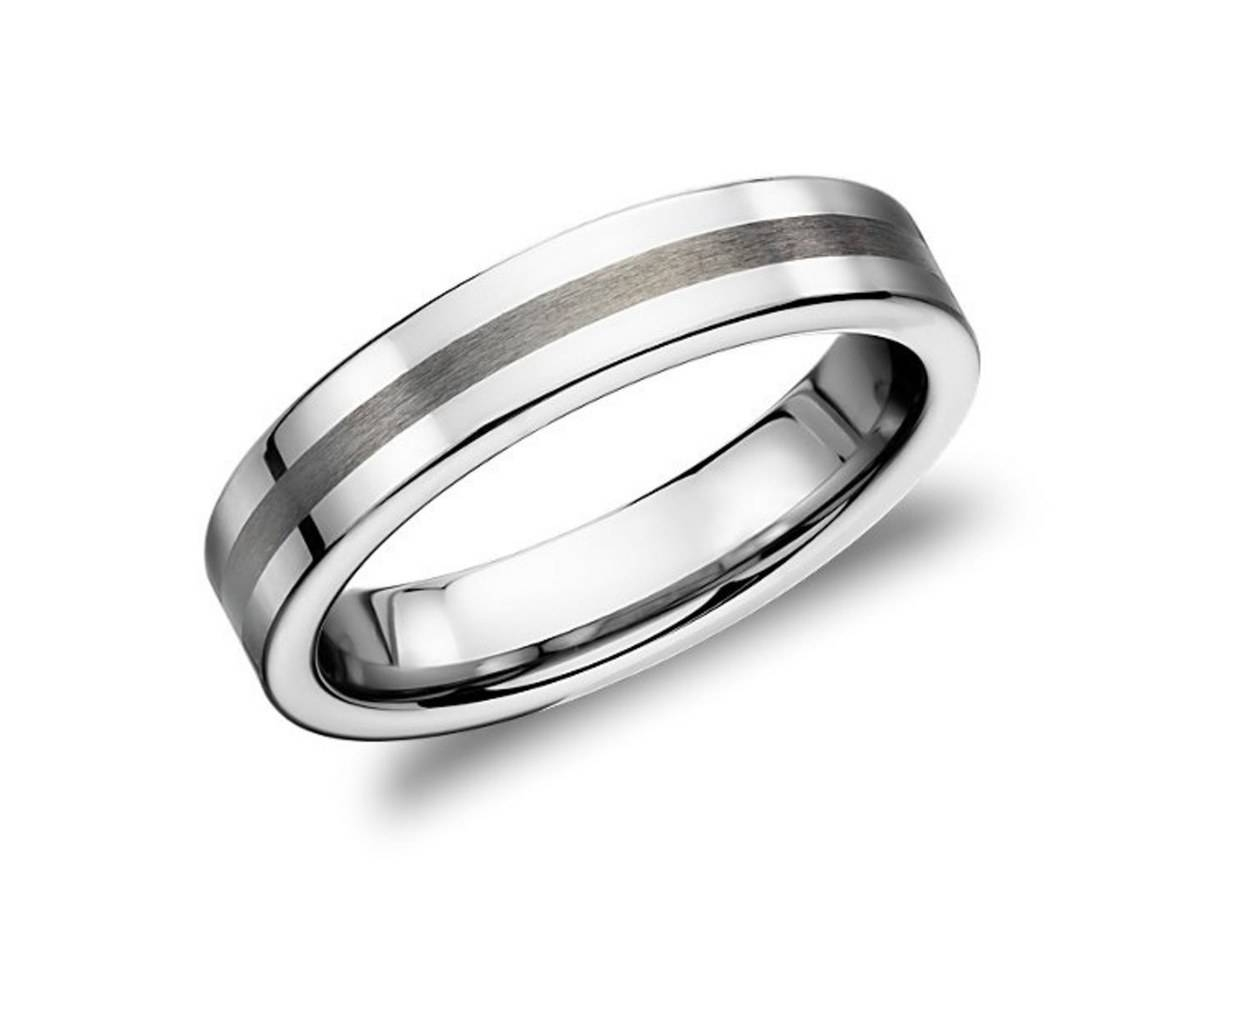 15 Men's Wedding Bands Your Groom Won't Want To Take Off | Glamour With Men's Wedding Bands (View 2 of 15)